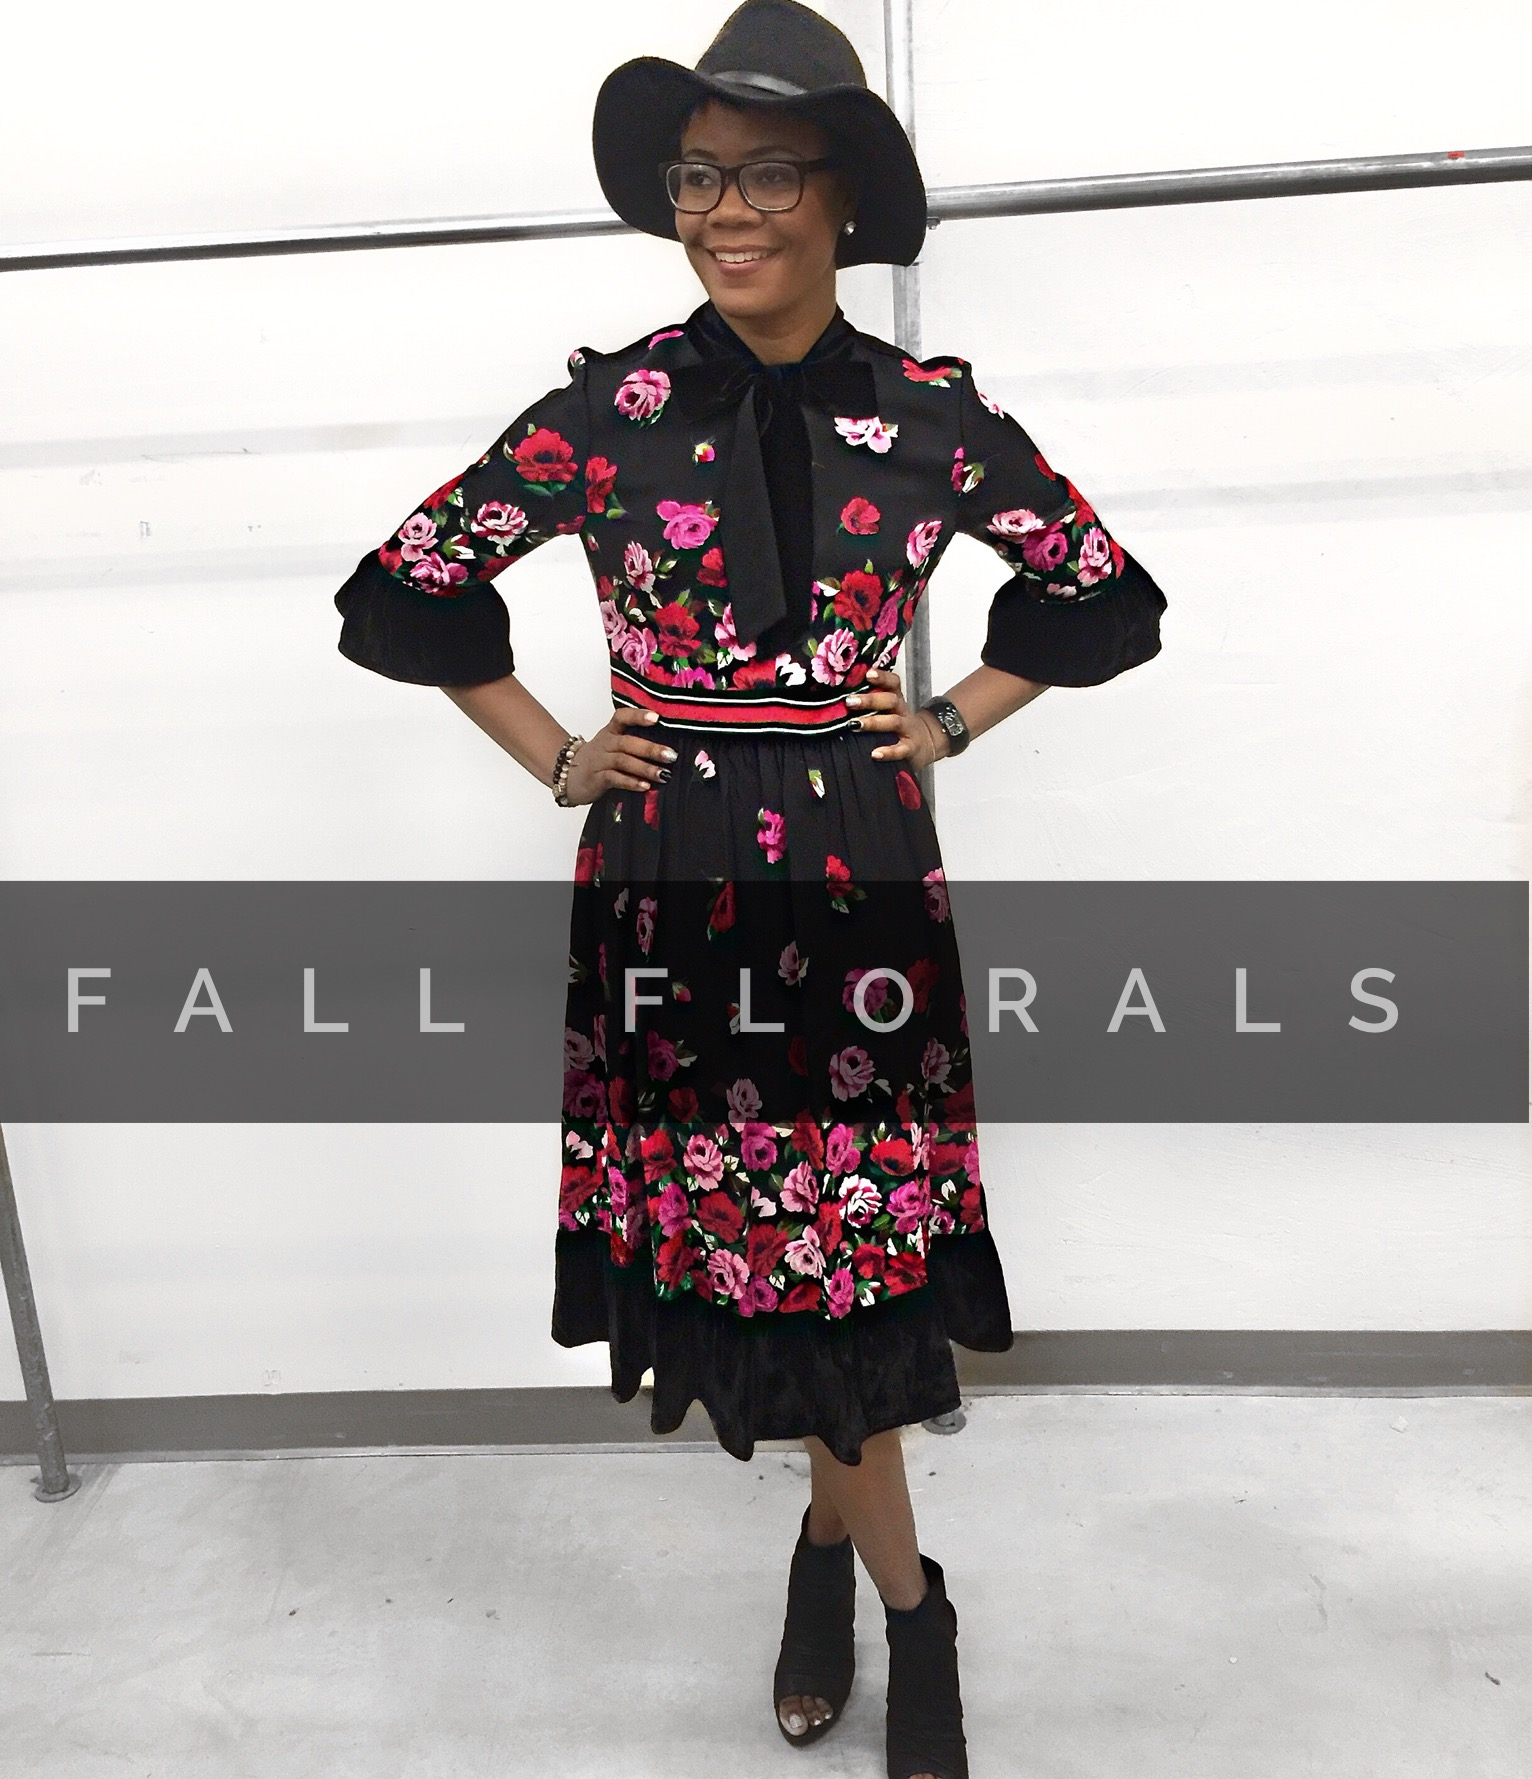 FALL FLORALS TRENDS